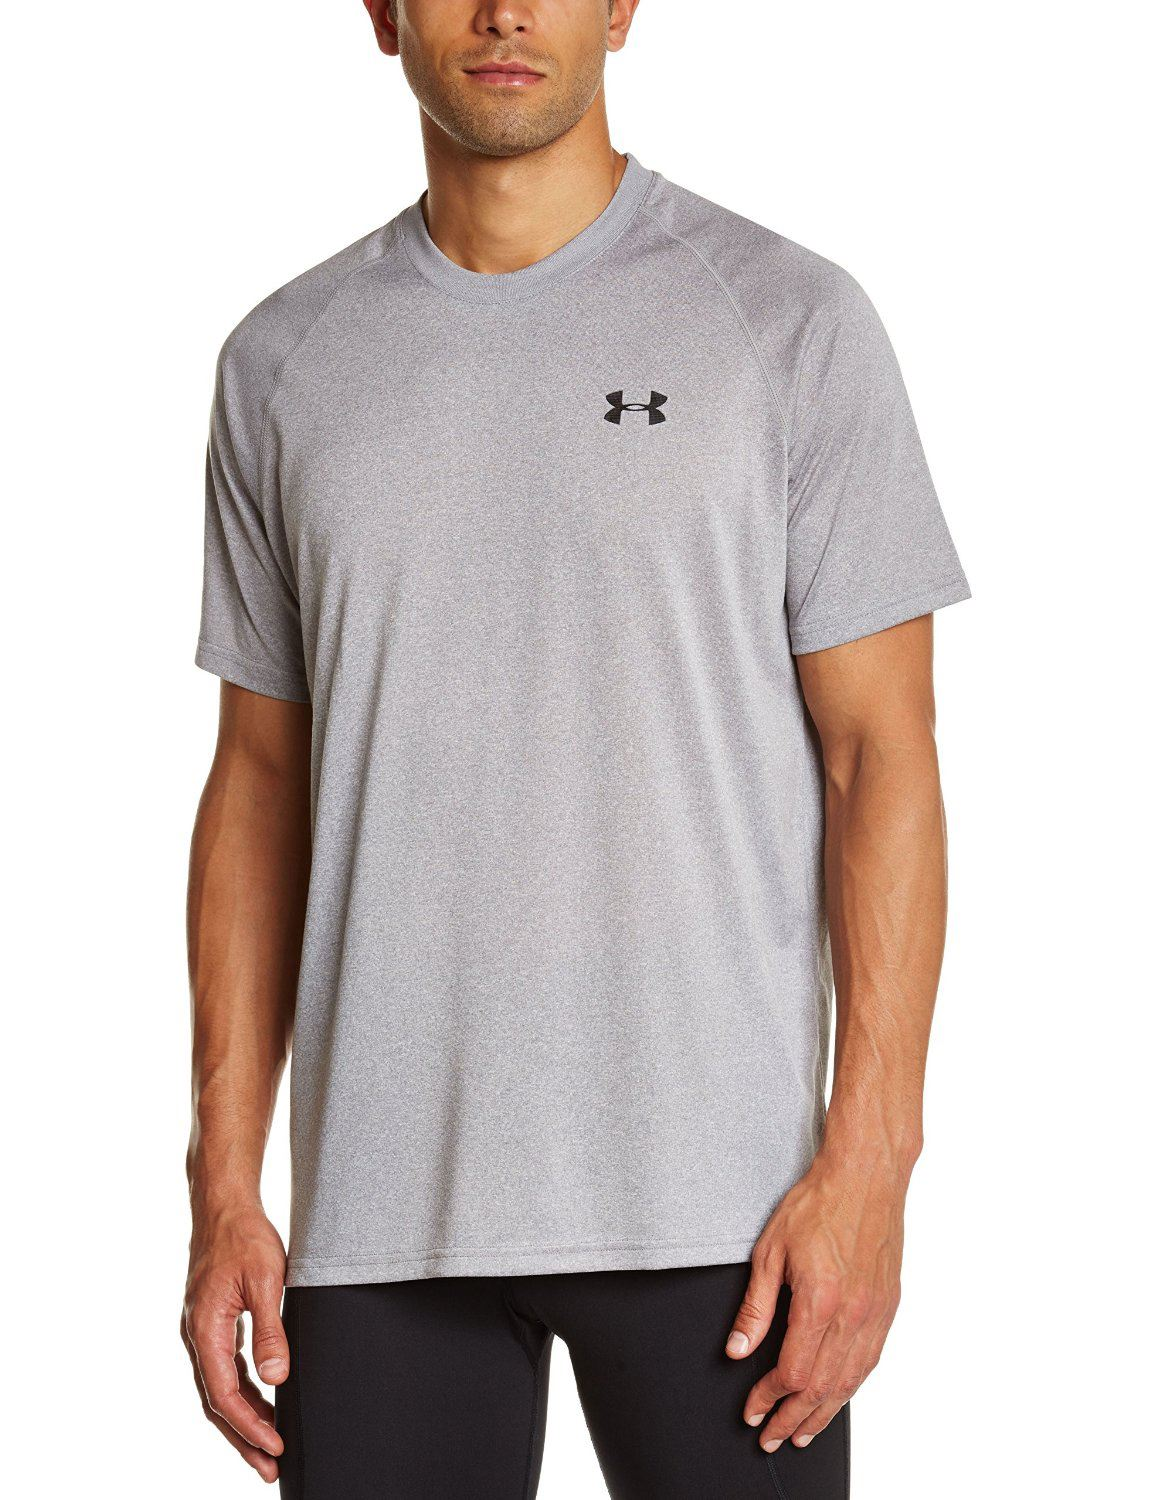 Under Armour Men 39 S Tech Short Sleeve T Shirt Tee All Sizes